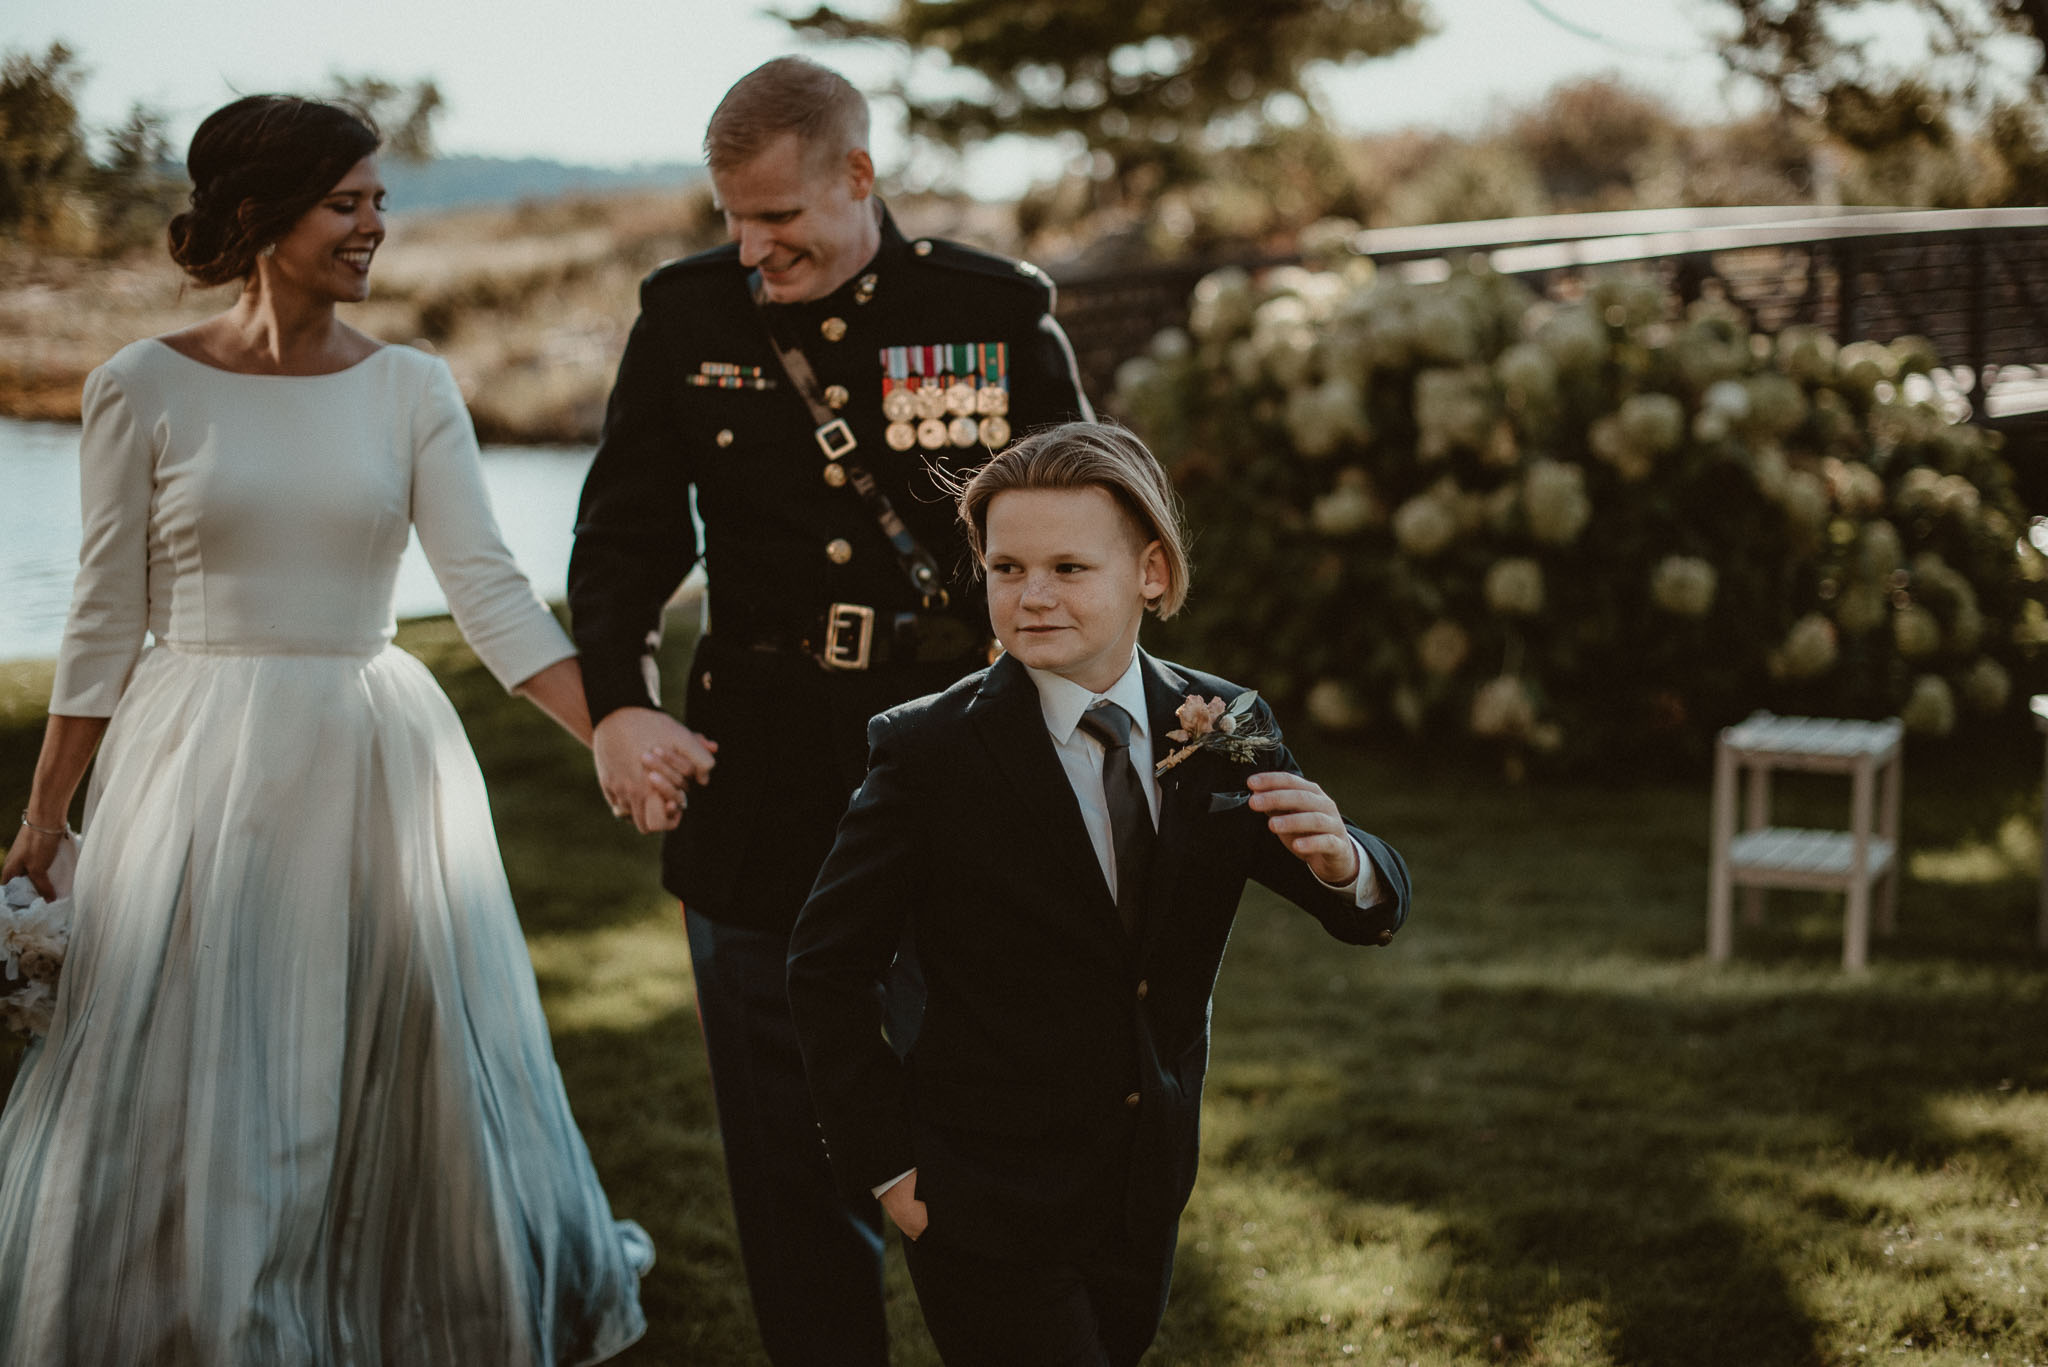 Bride and Groom walking with their son ahead of them.